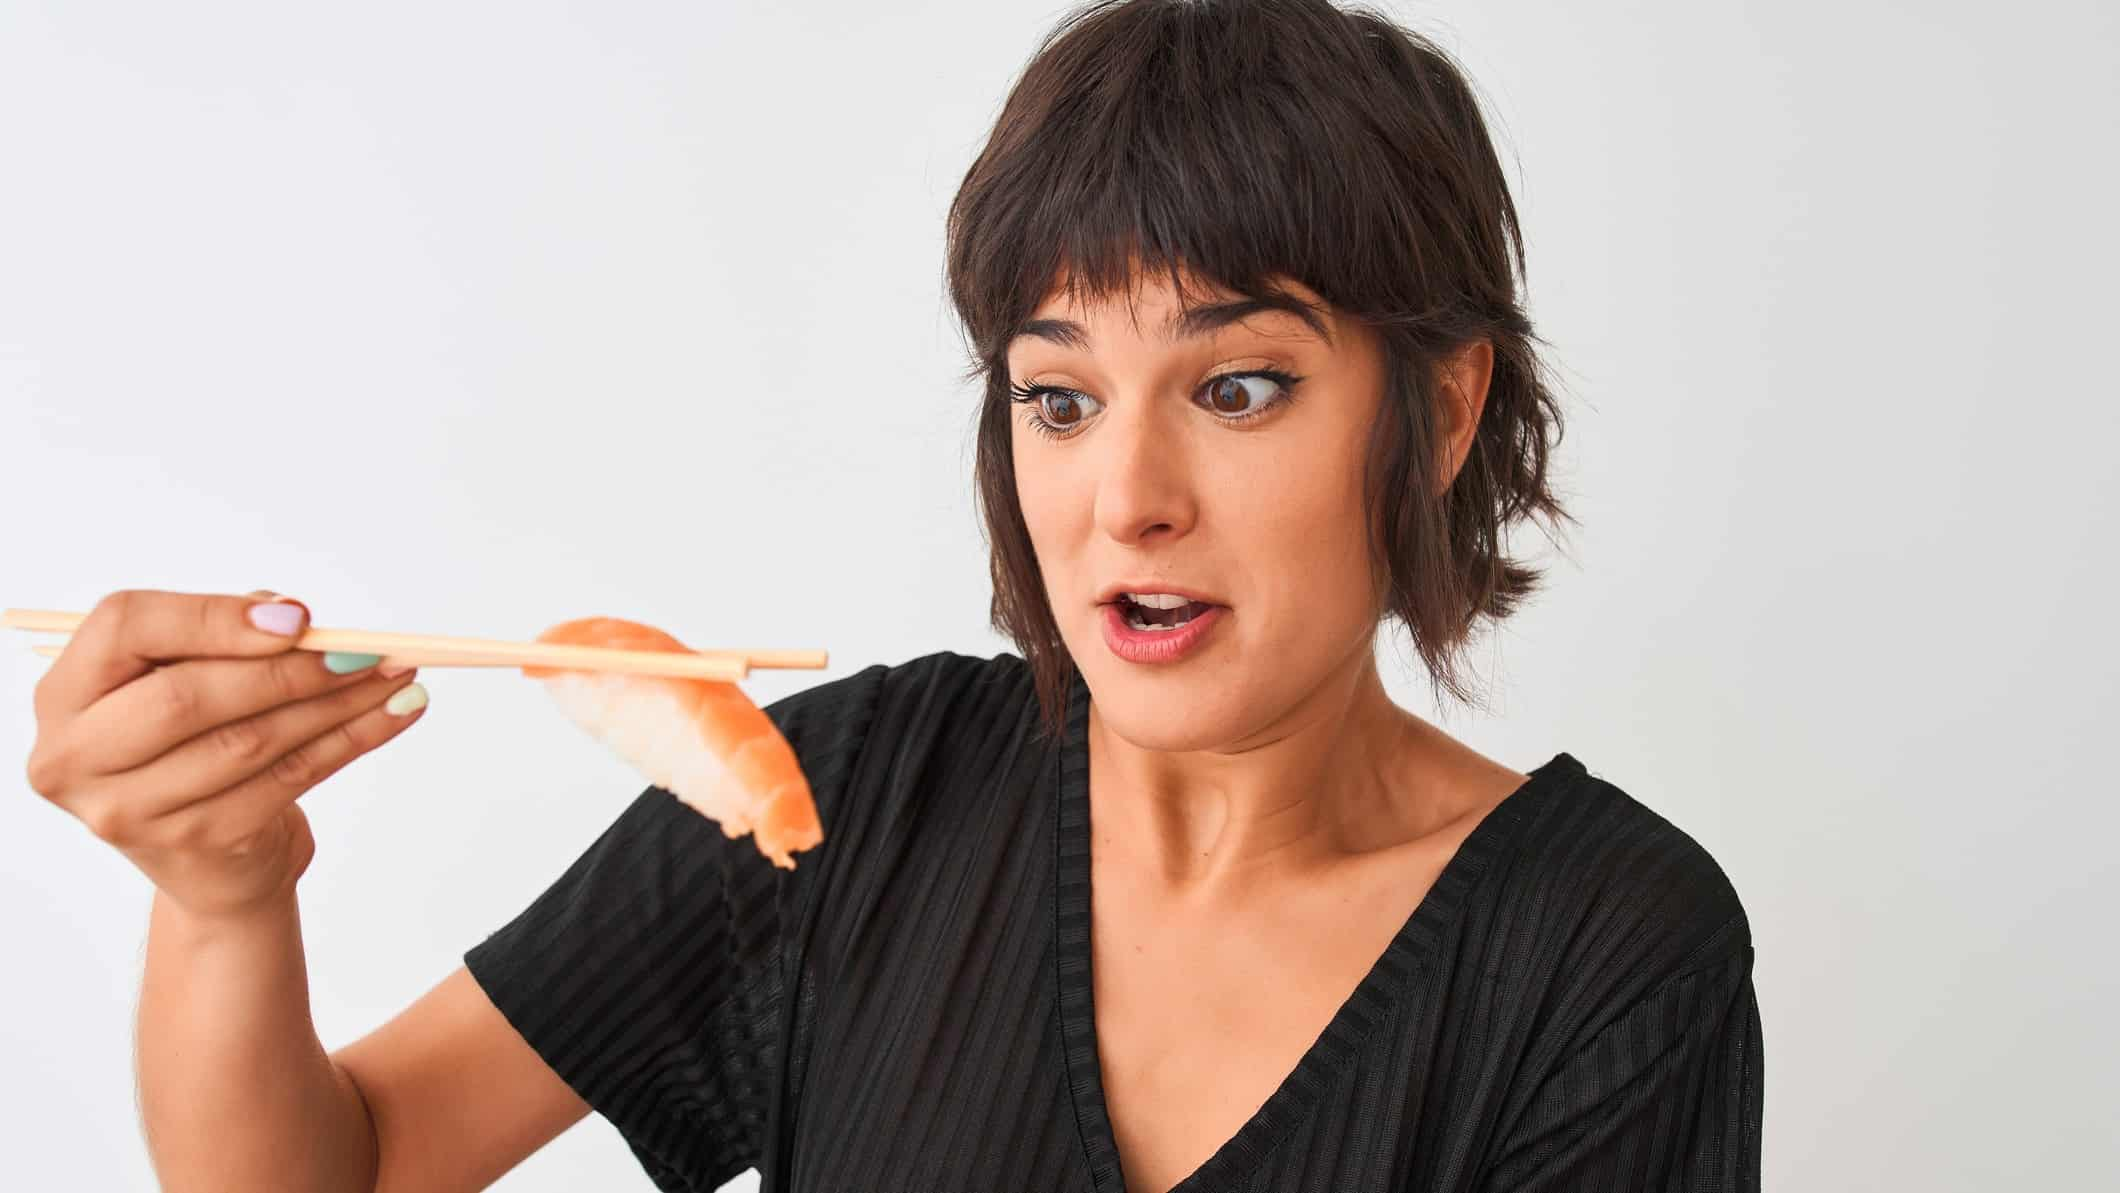 A surprised woman holds a piece of salmon with chopsticks